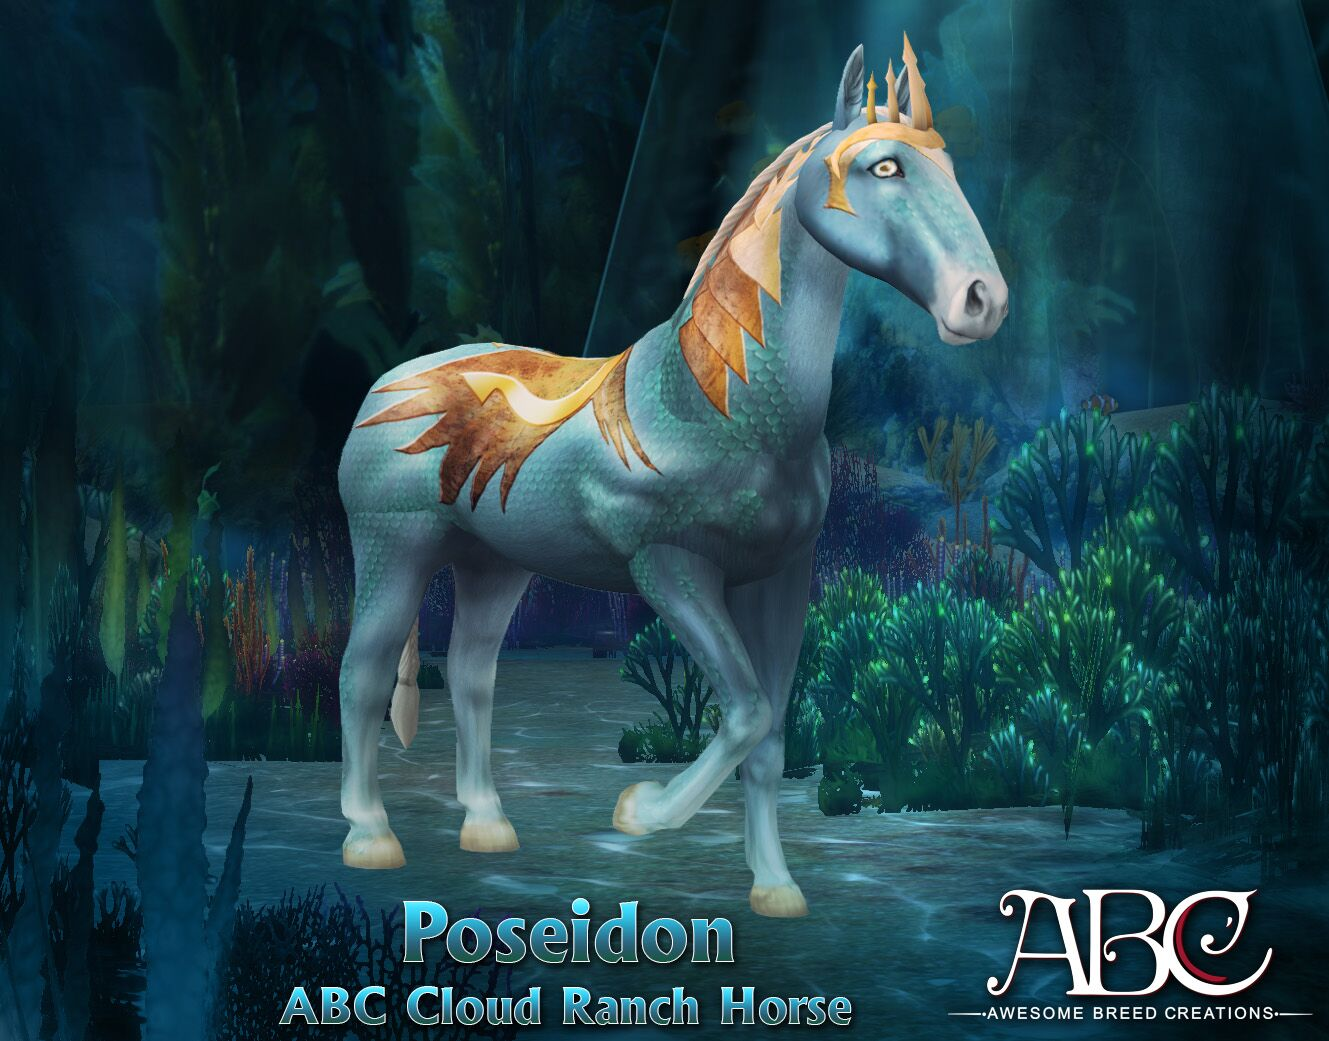 ABC - Awesome Breed Cretaions